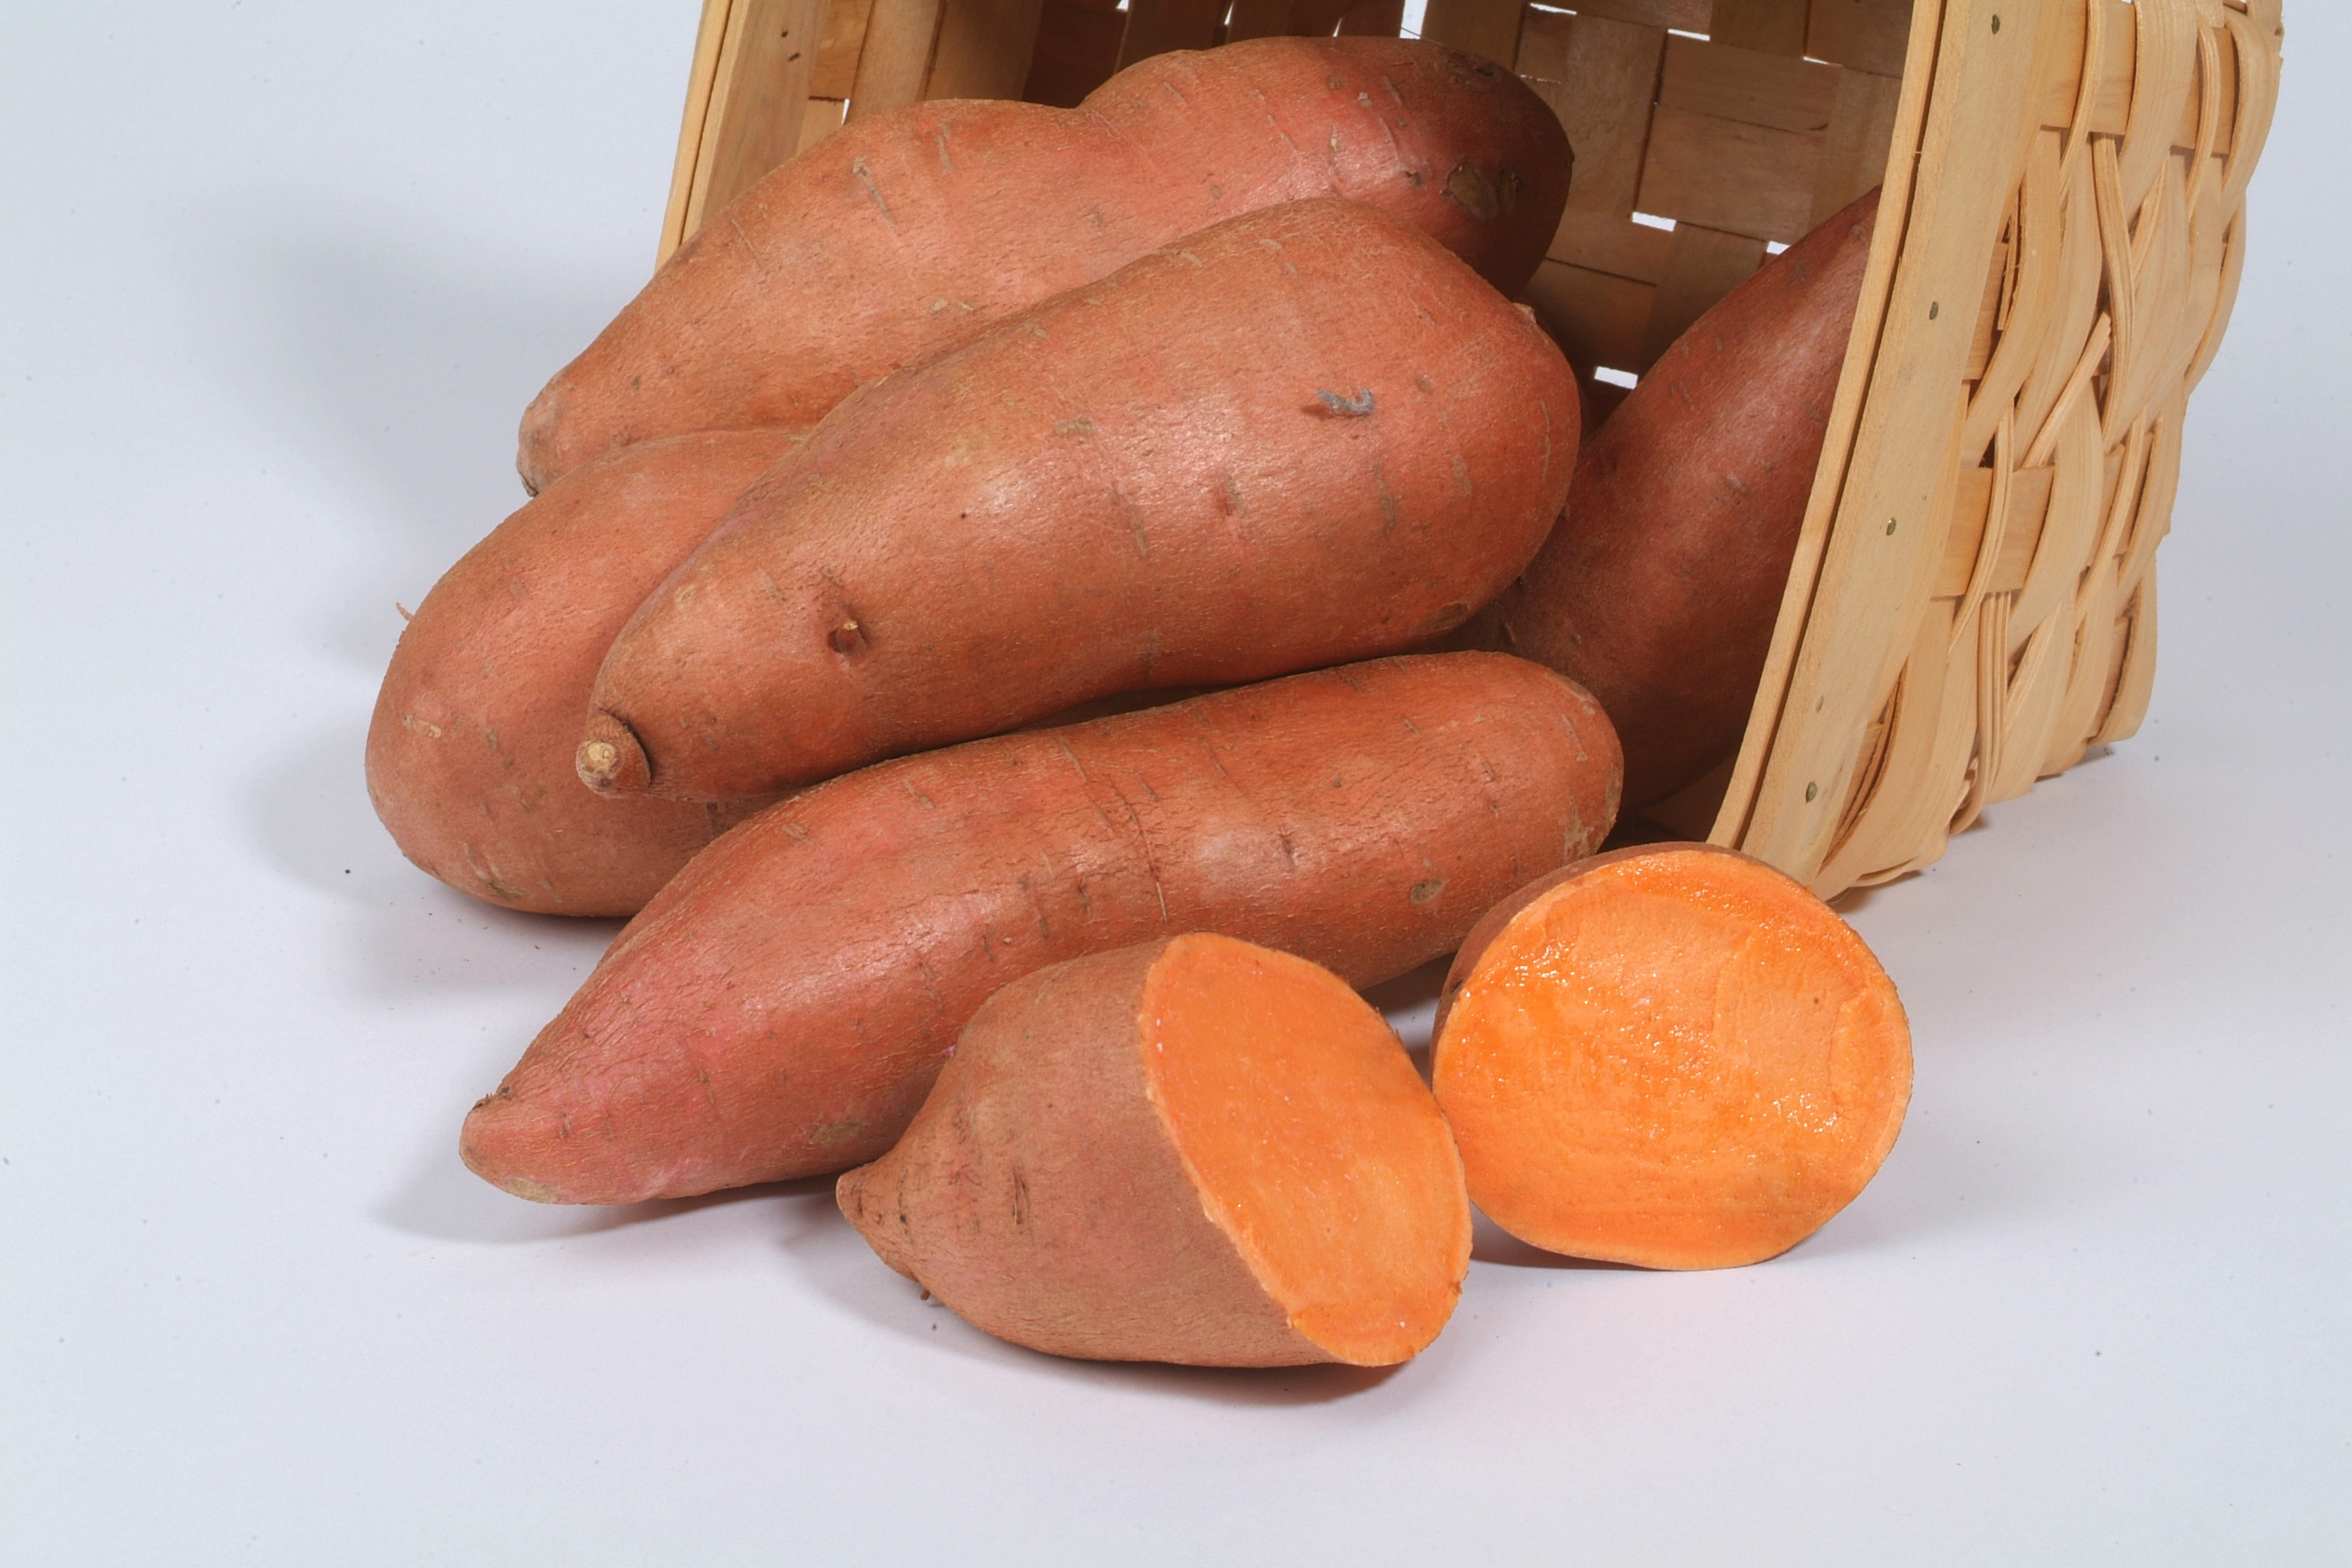 Evangeline sweet potatoes.